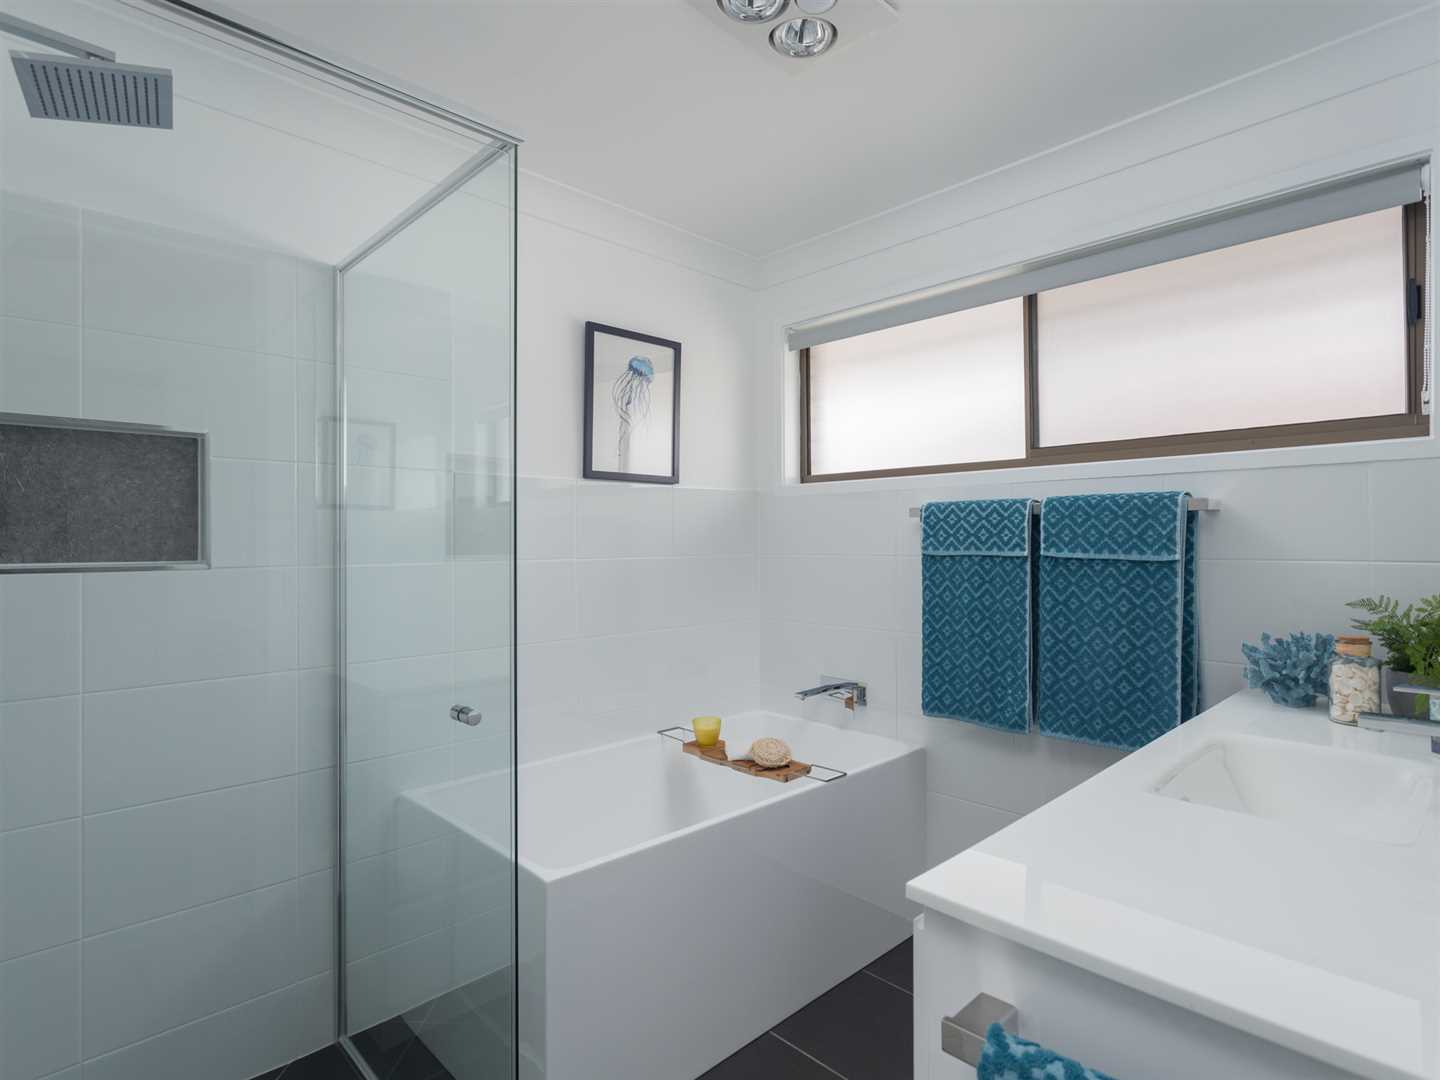 Tweed Heads, 4 Compass Way | Harcourts BMG | Harcourts